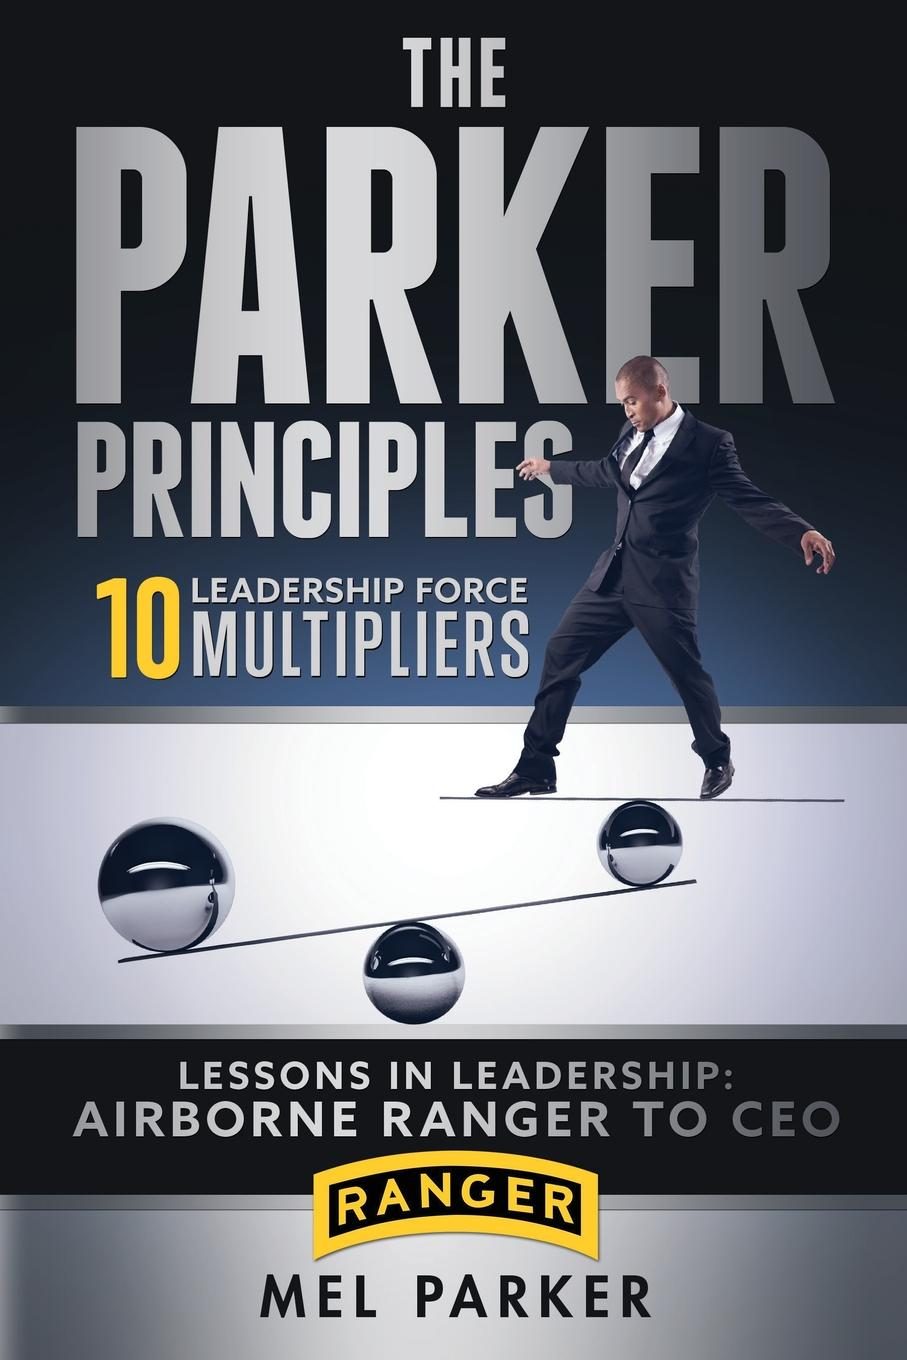 Mel Parker The Parker Principles. 10 Leadership Force Multipliers jacob morgan the future of work attract new talent build better leaders and create a competitive organization